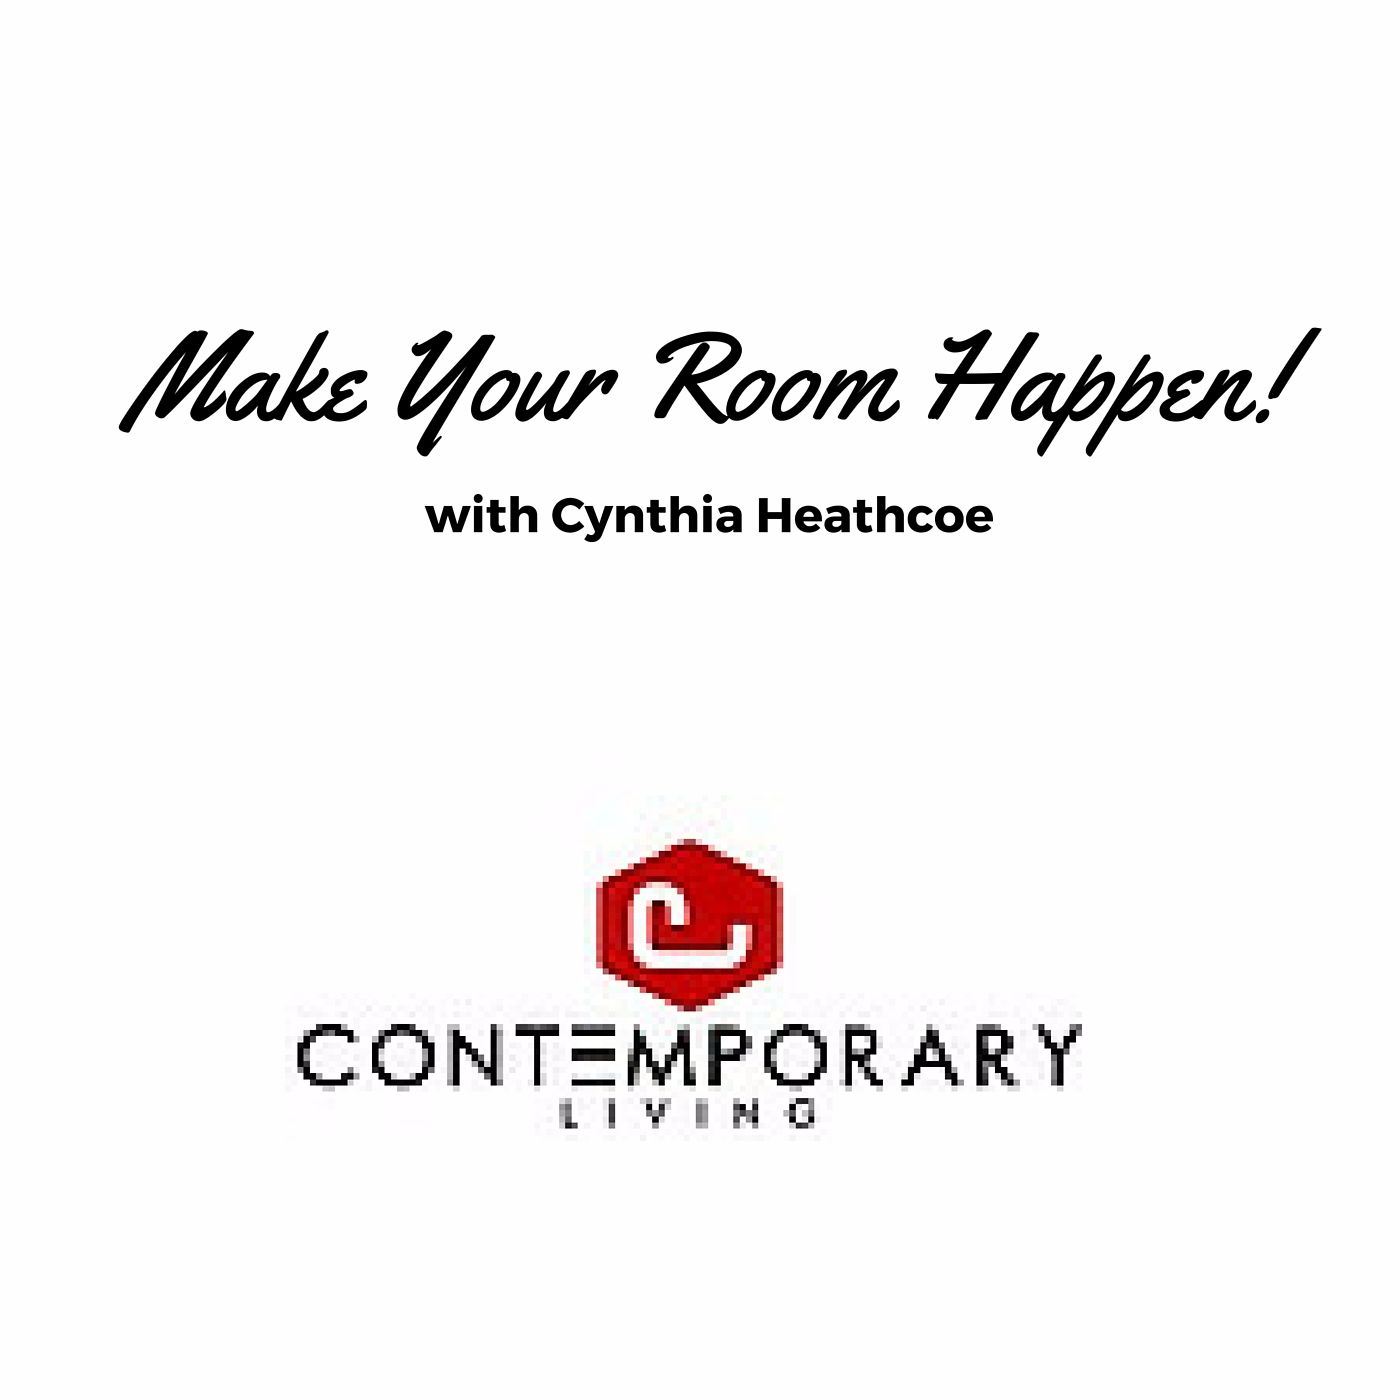 Make Your Room Happen